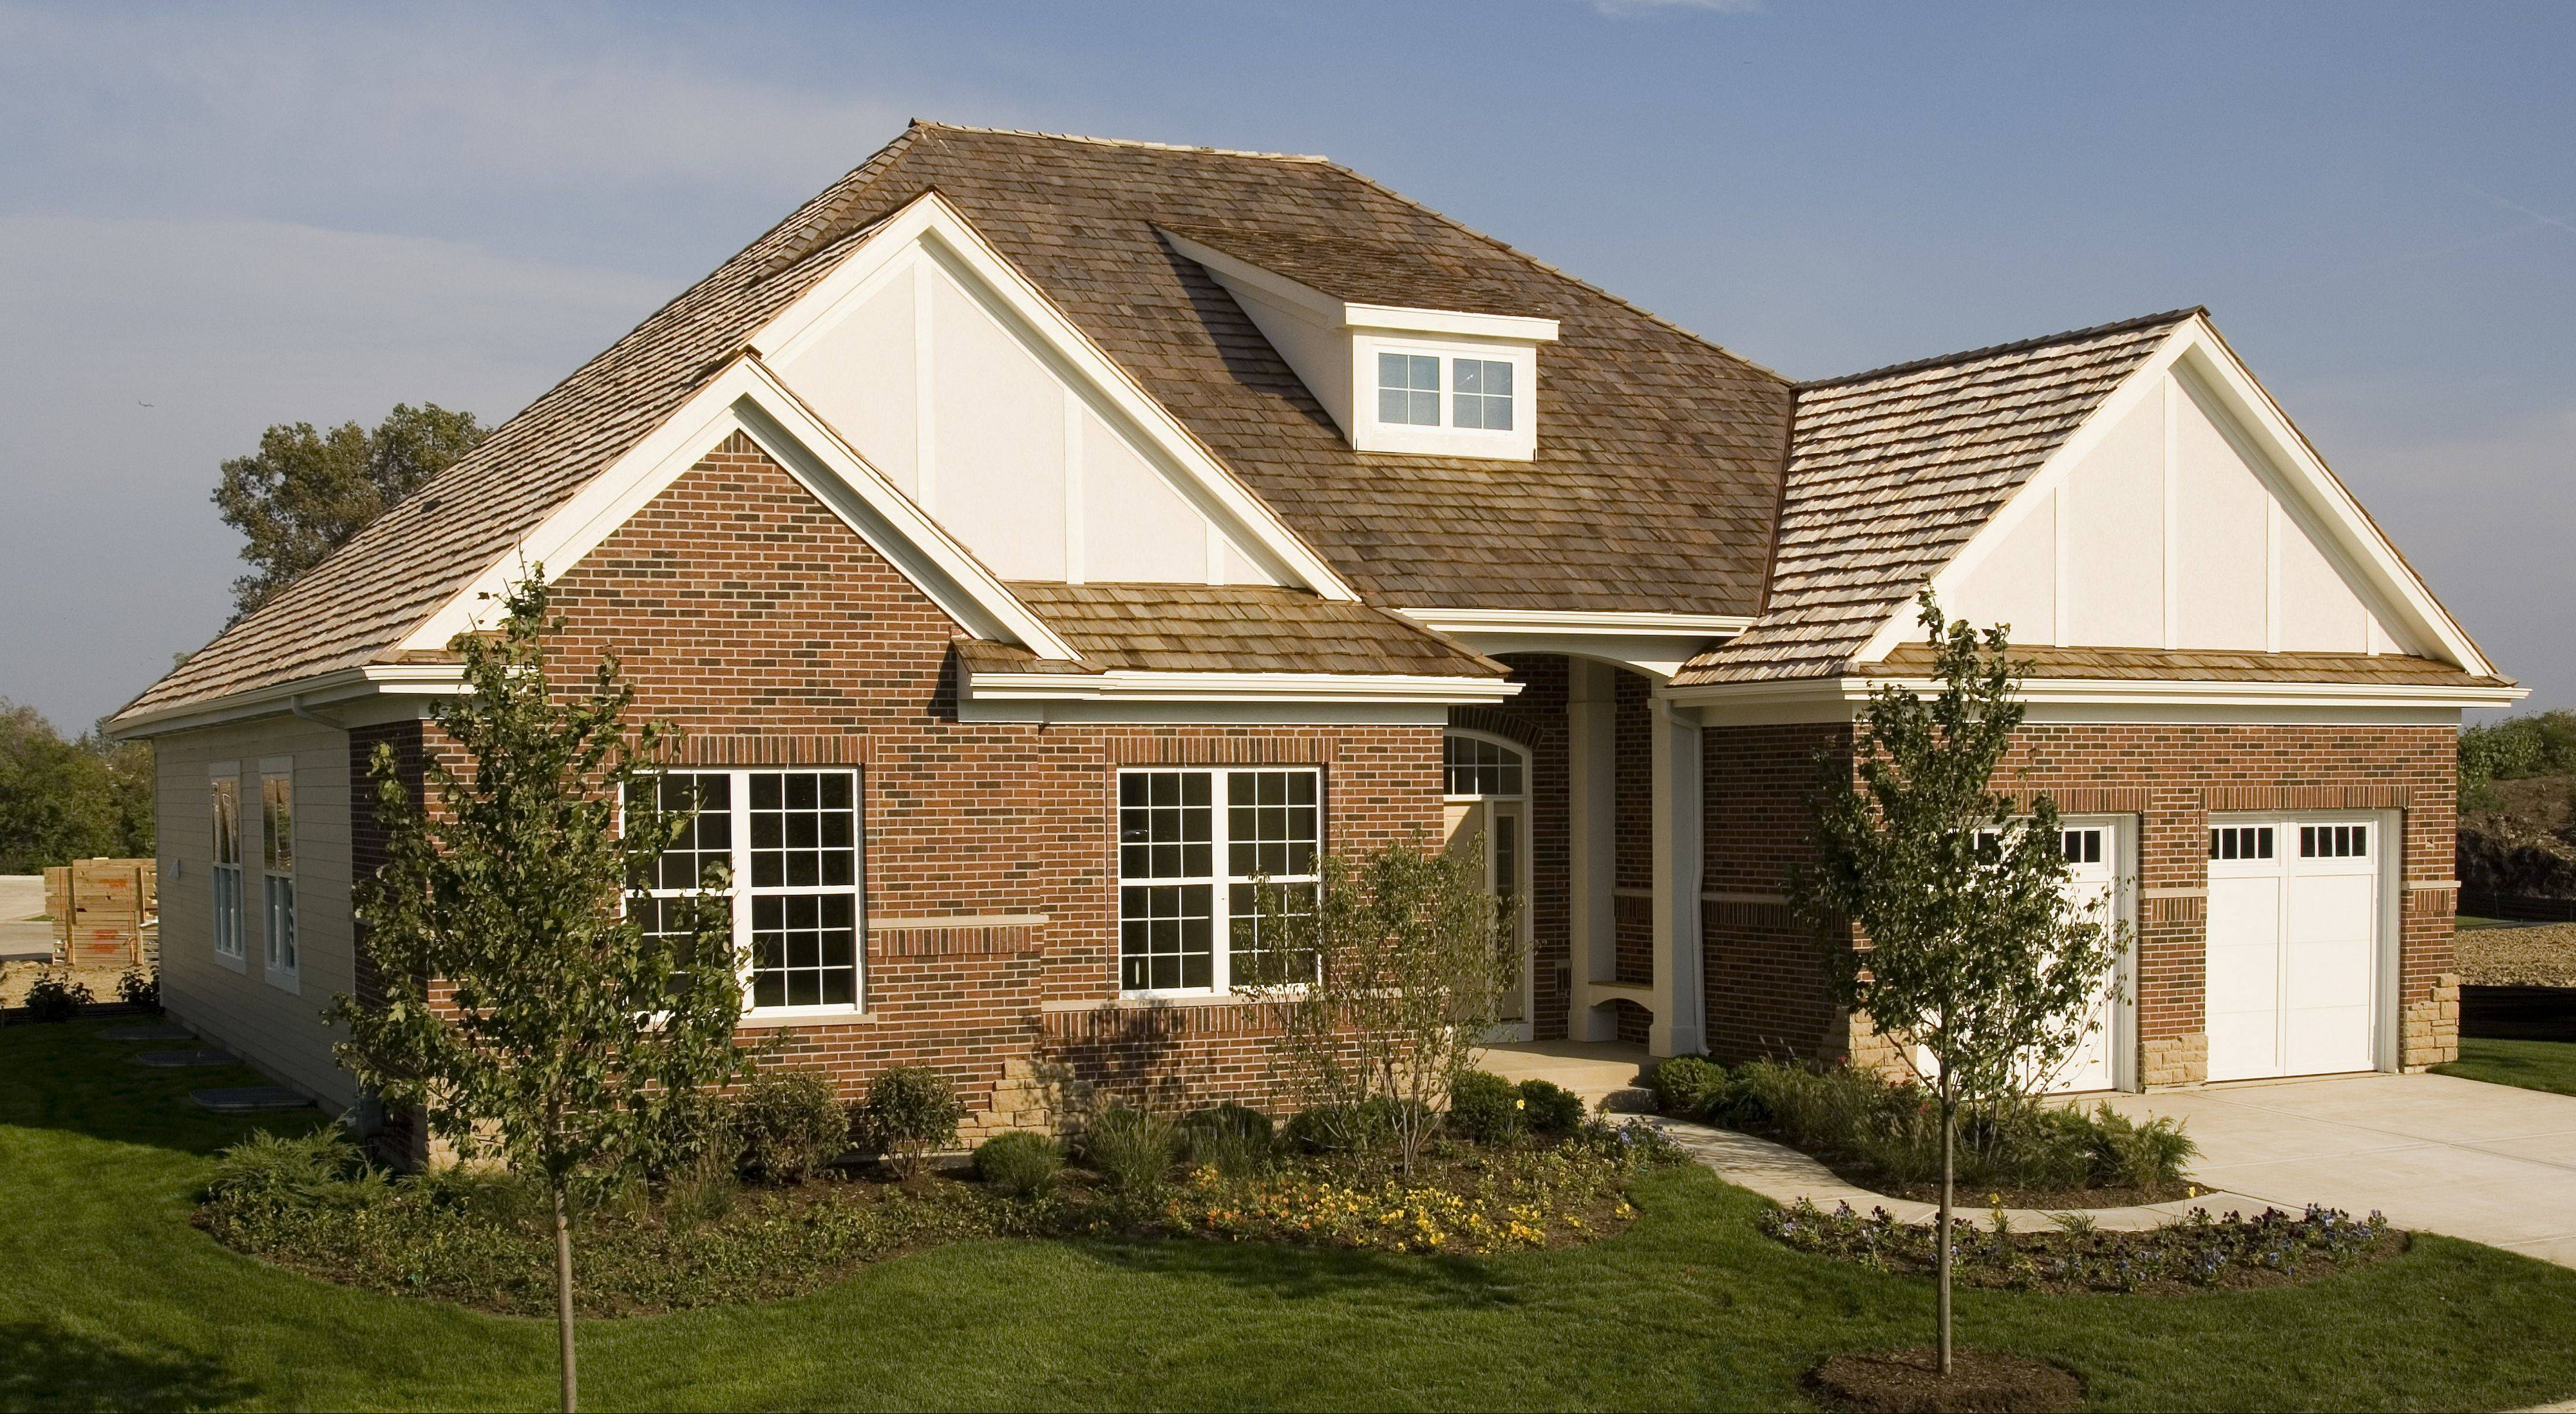 Meritus Homes is building ranch houses at two suburban communities, Creekside at Inverness Ridge and Ravenna in Long Grove.